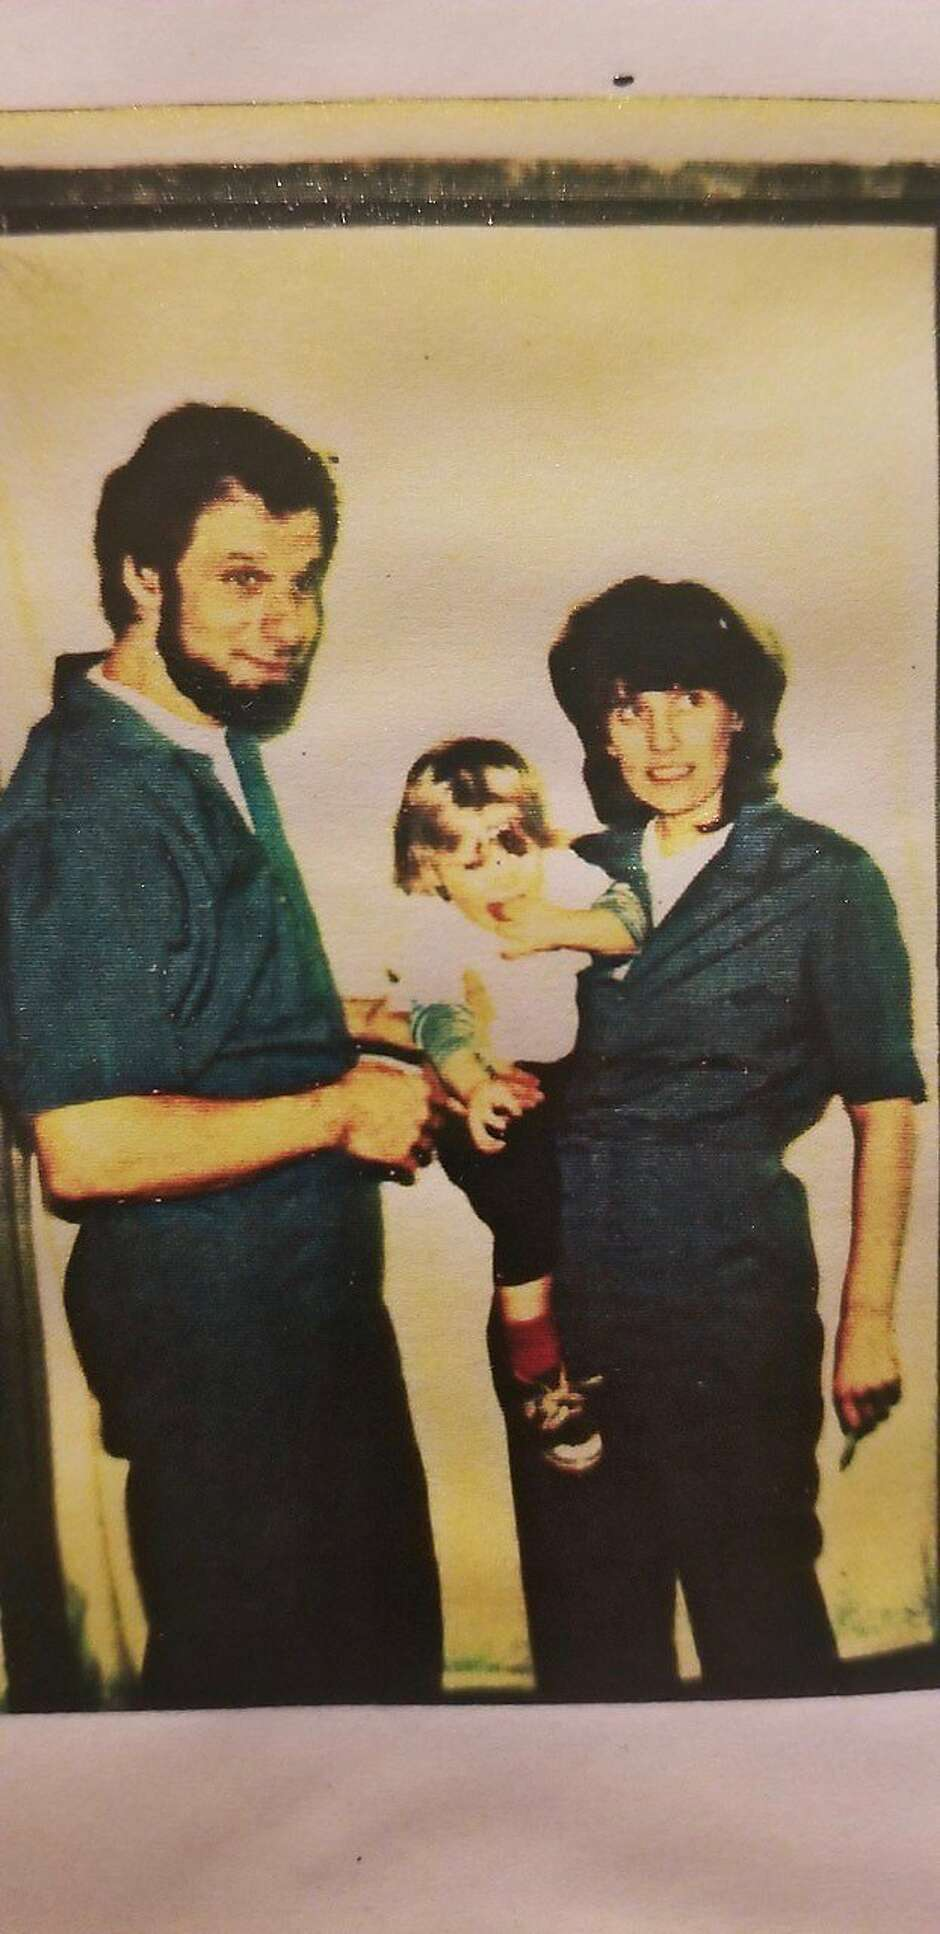 Boudin with his parents, David Gilbert and Kathy Boudin, who went to prison for their part in a deadly armored car robbery in 1981.